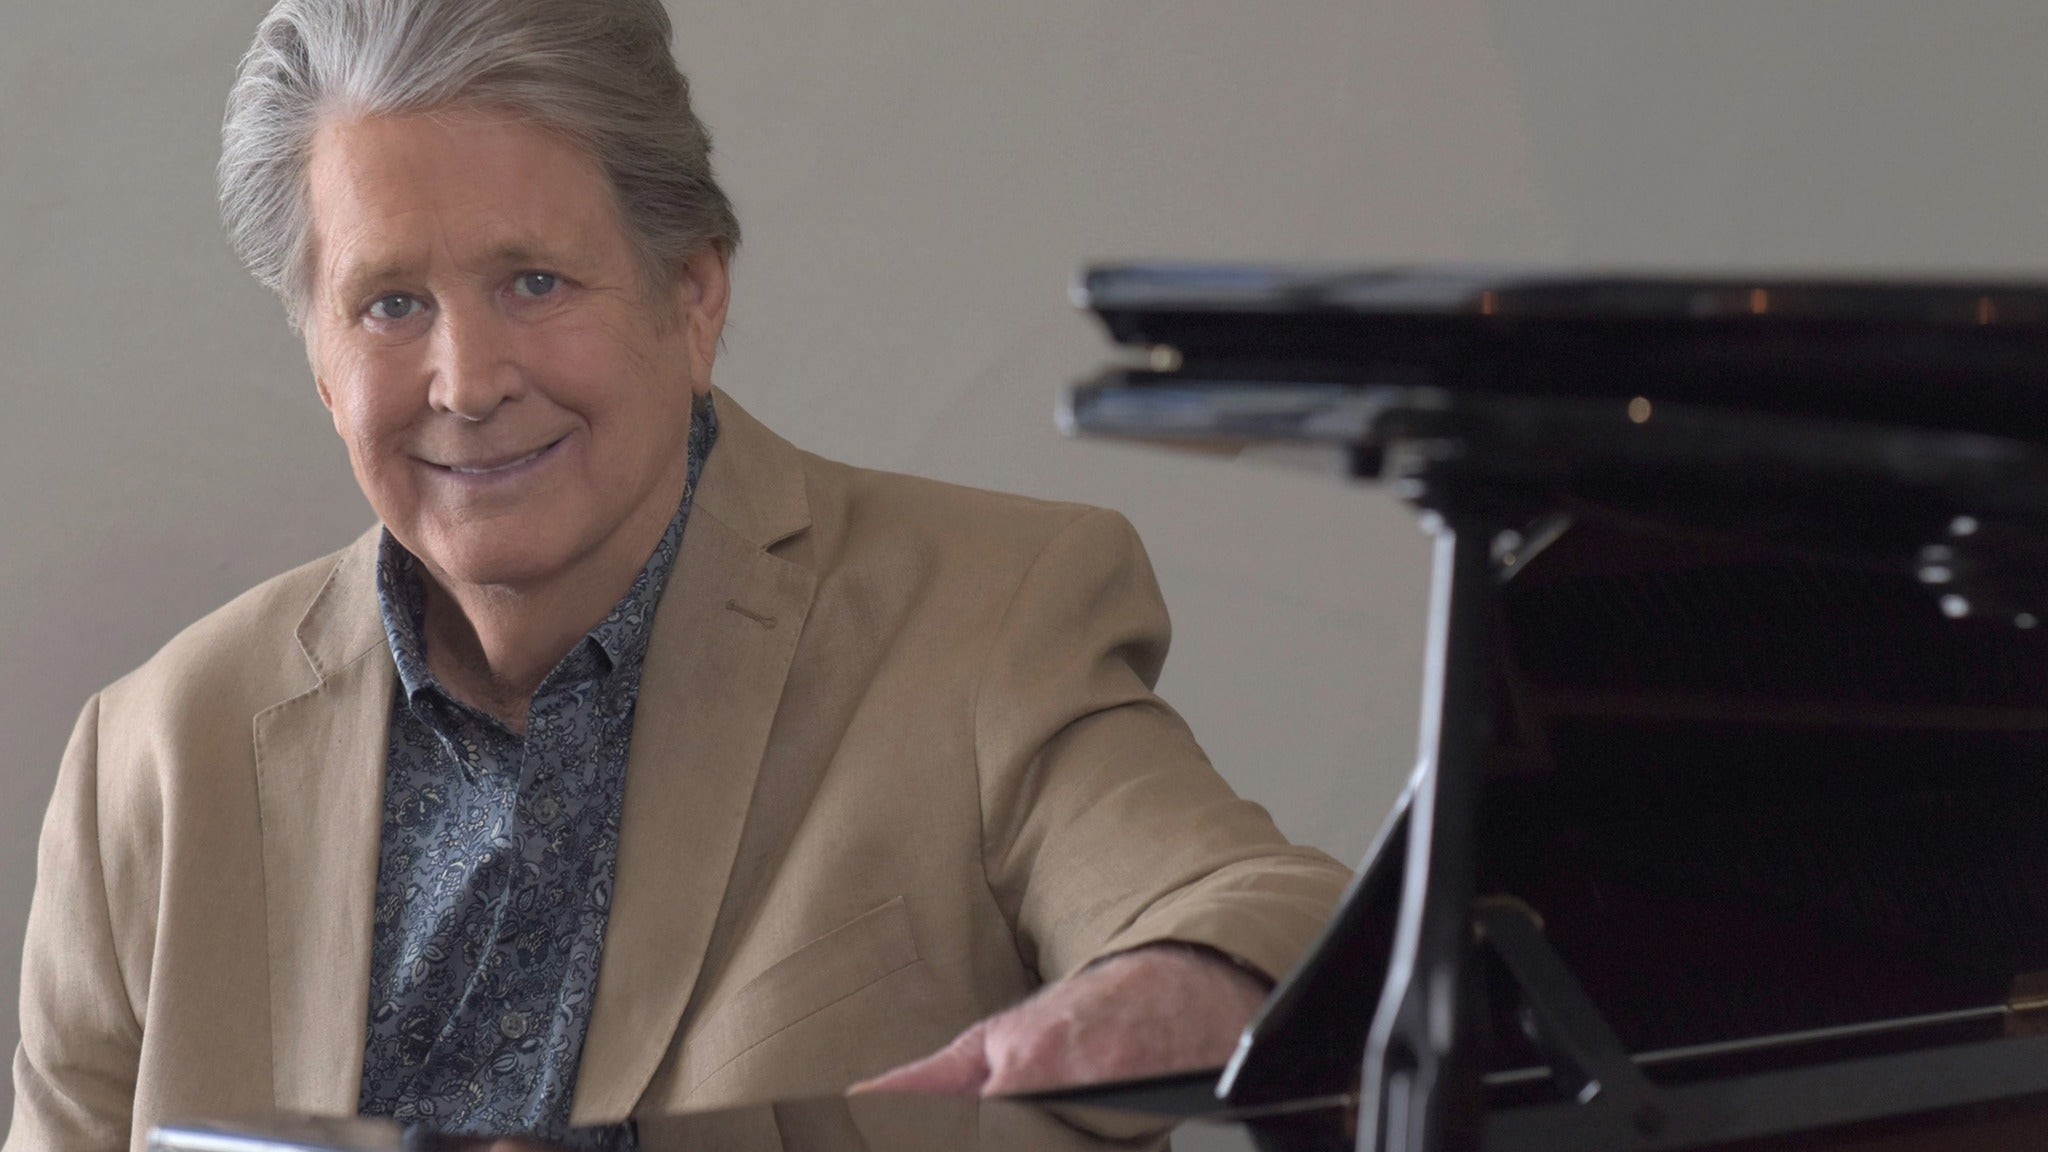 Brian Wilson at Van Wezel Performing Arts Center